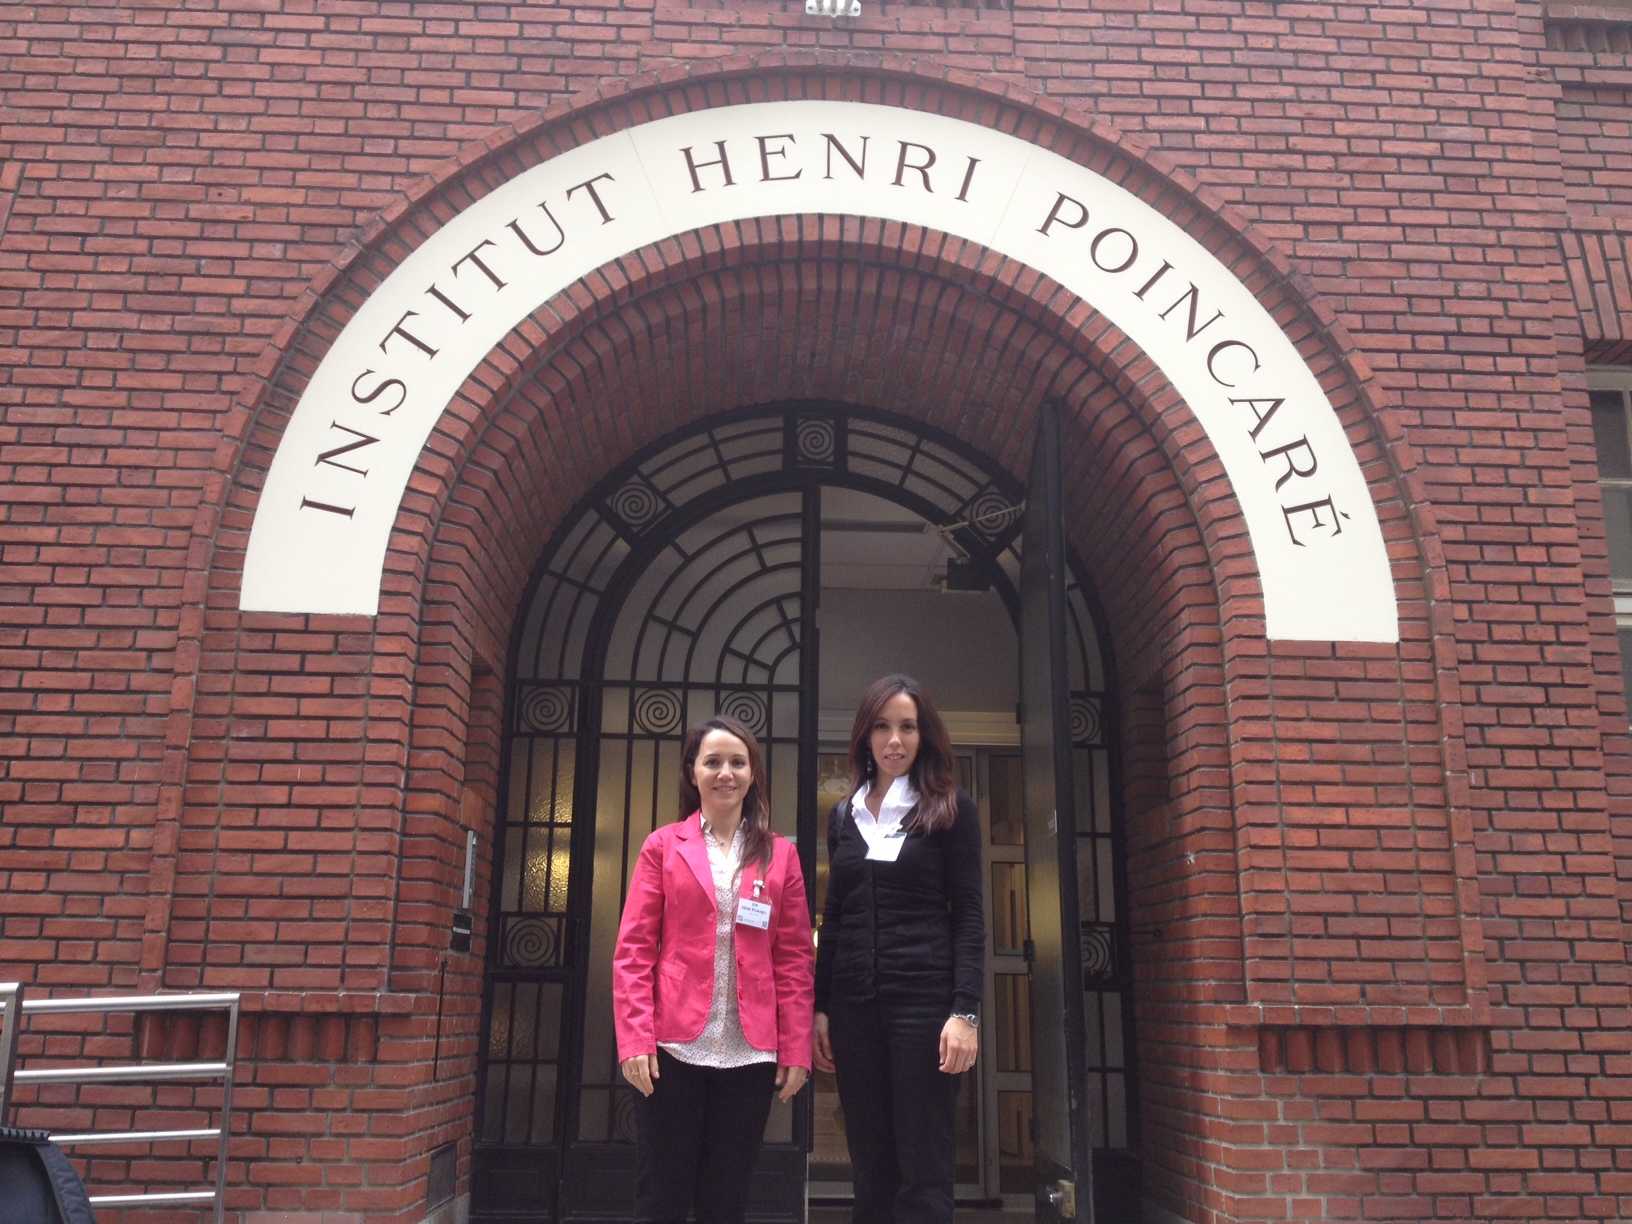 Neyre presented her doctoral work at the Applied Mathematics Institute of France (Institut Henri Poincare, Paris)